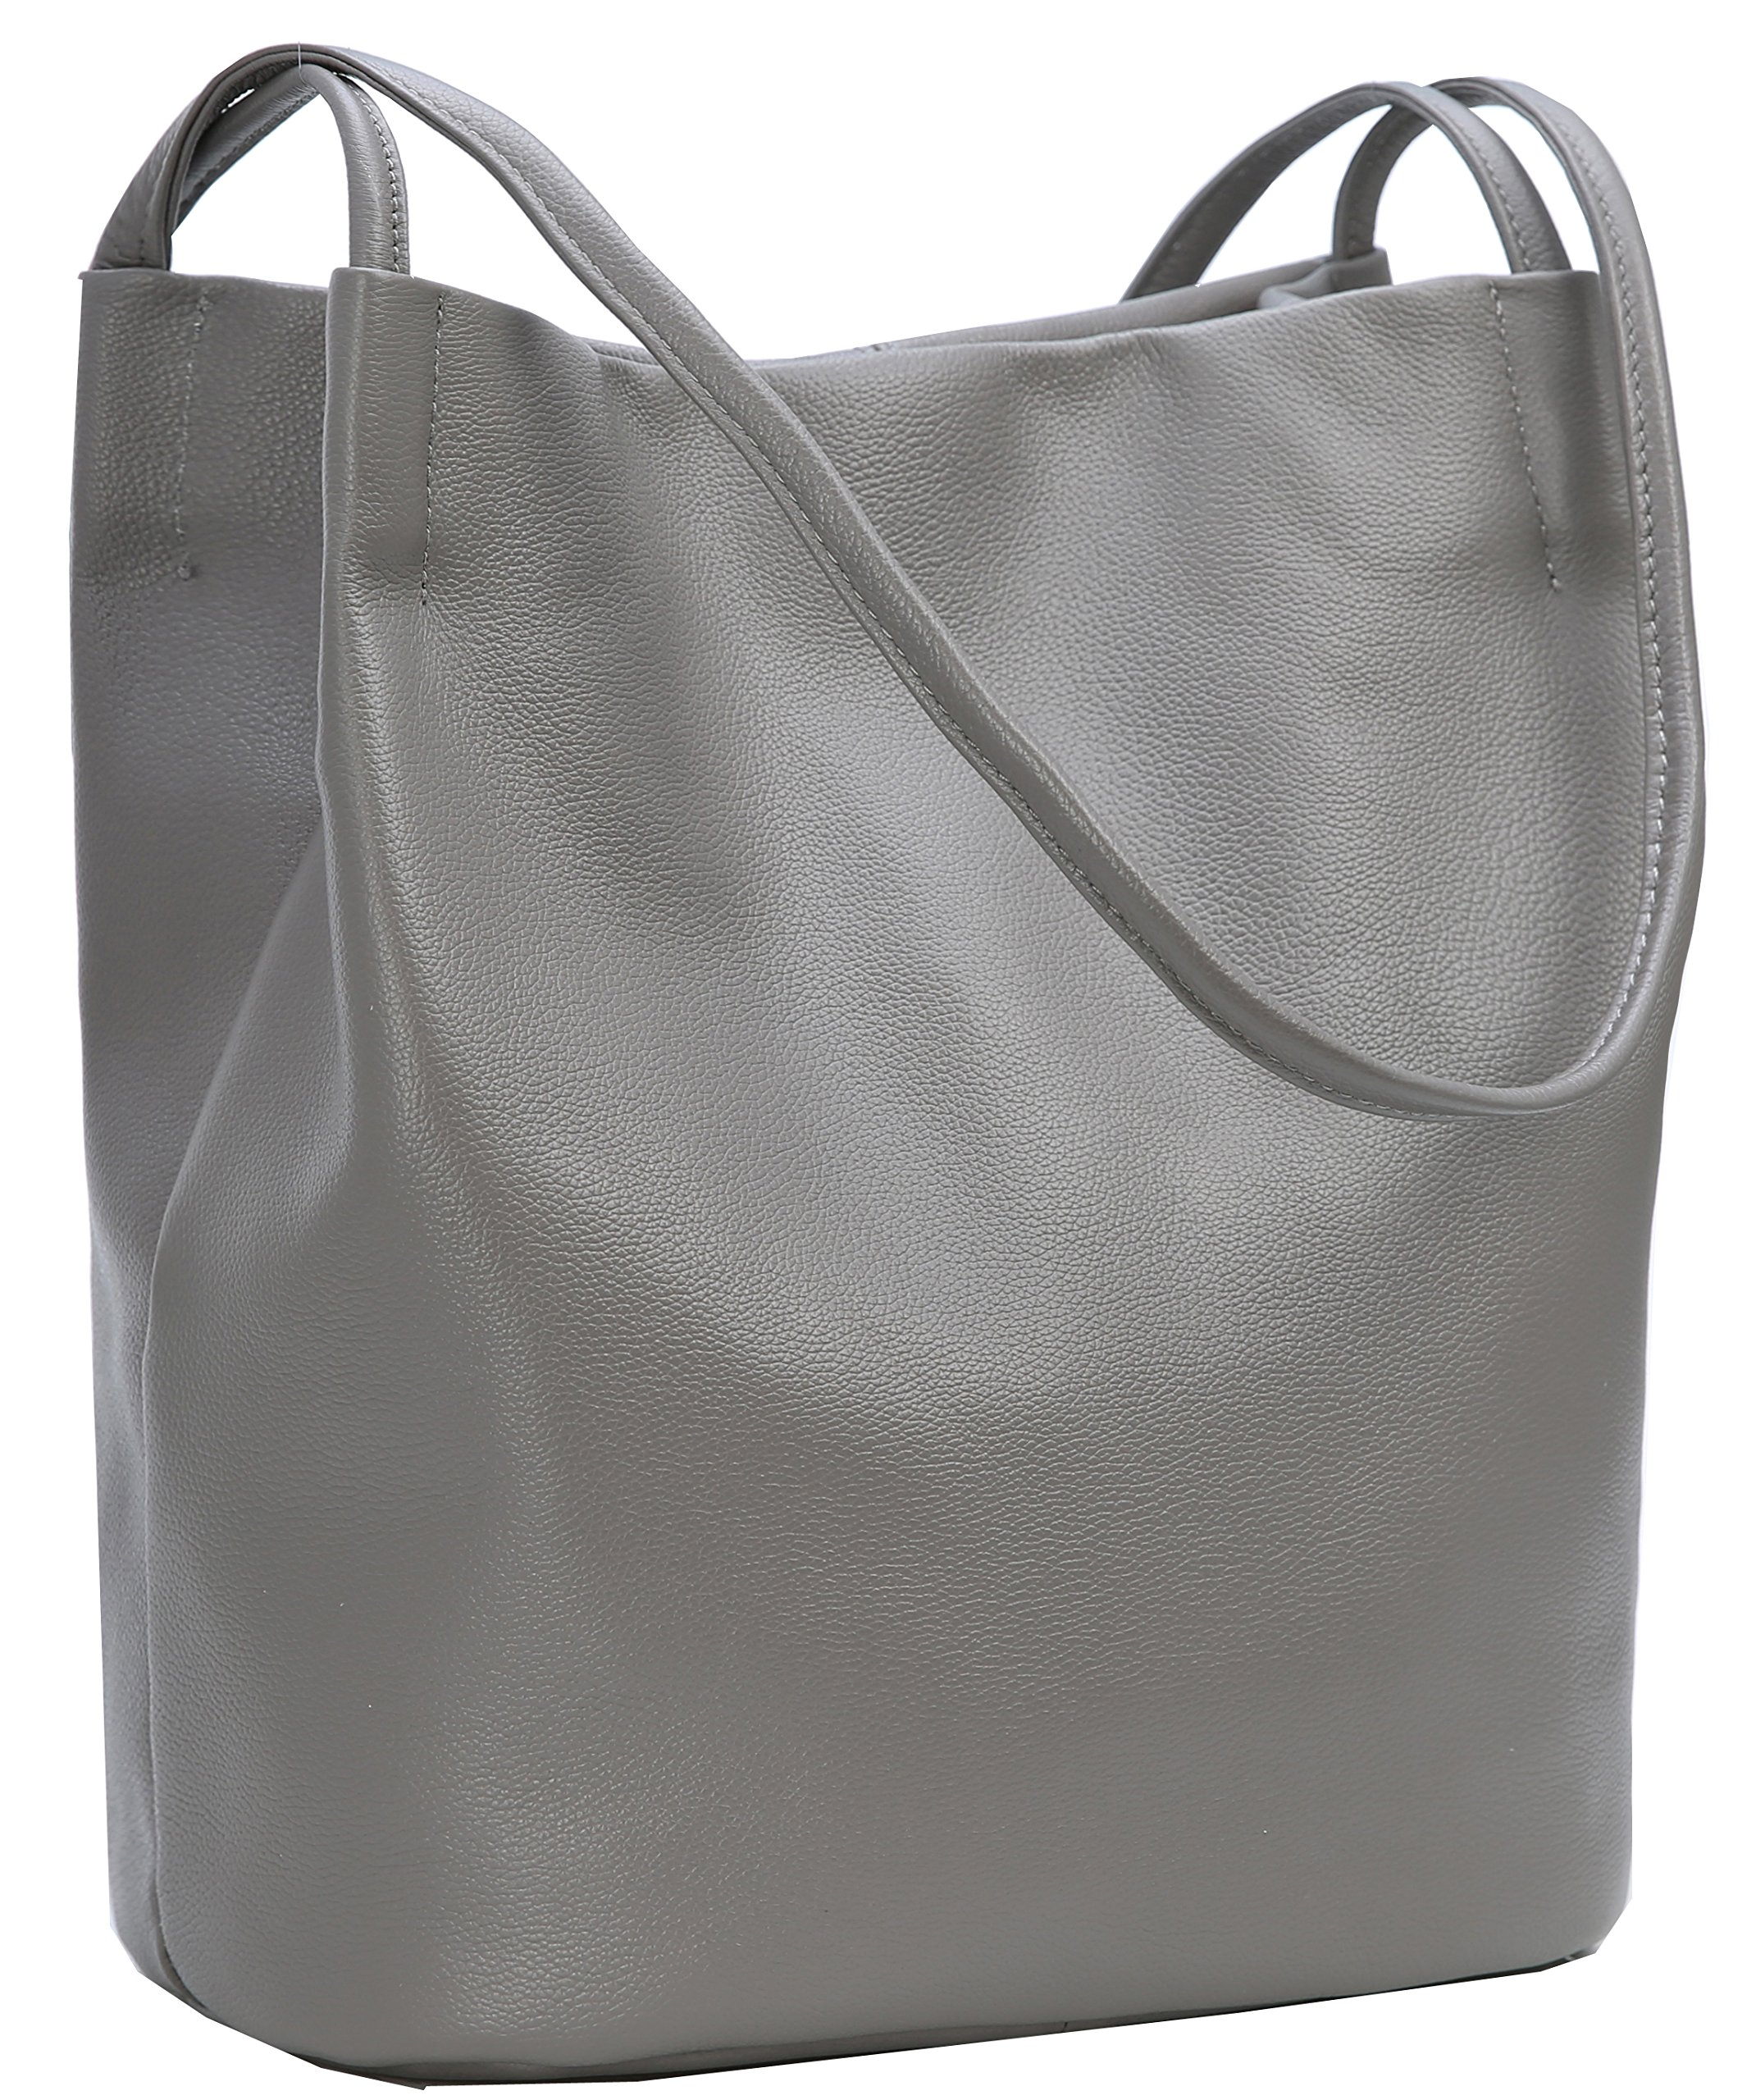 Iswee Leather Shoulder Bag Bucket Bag Hobo Lady Handbag and Purse Fashion Tote for Women (Grey)